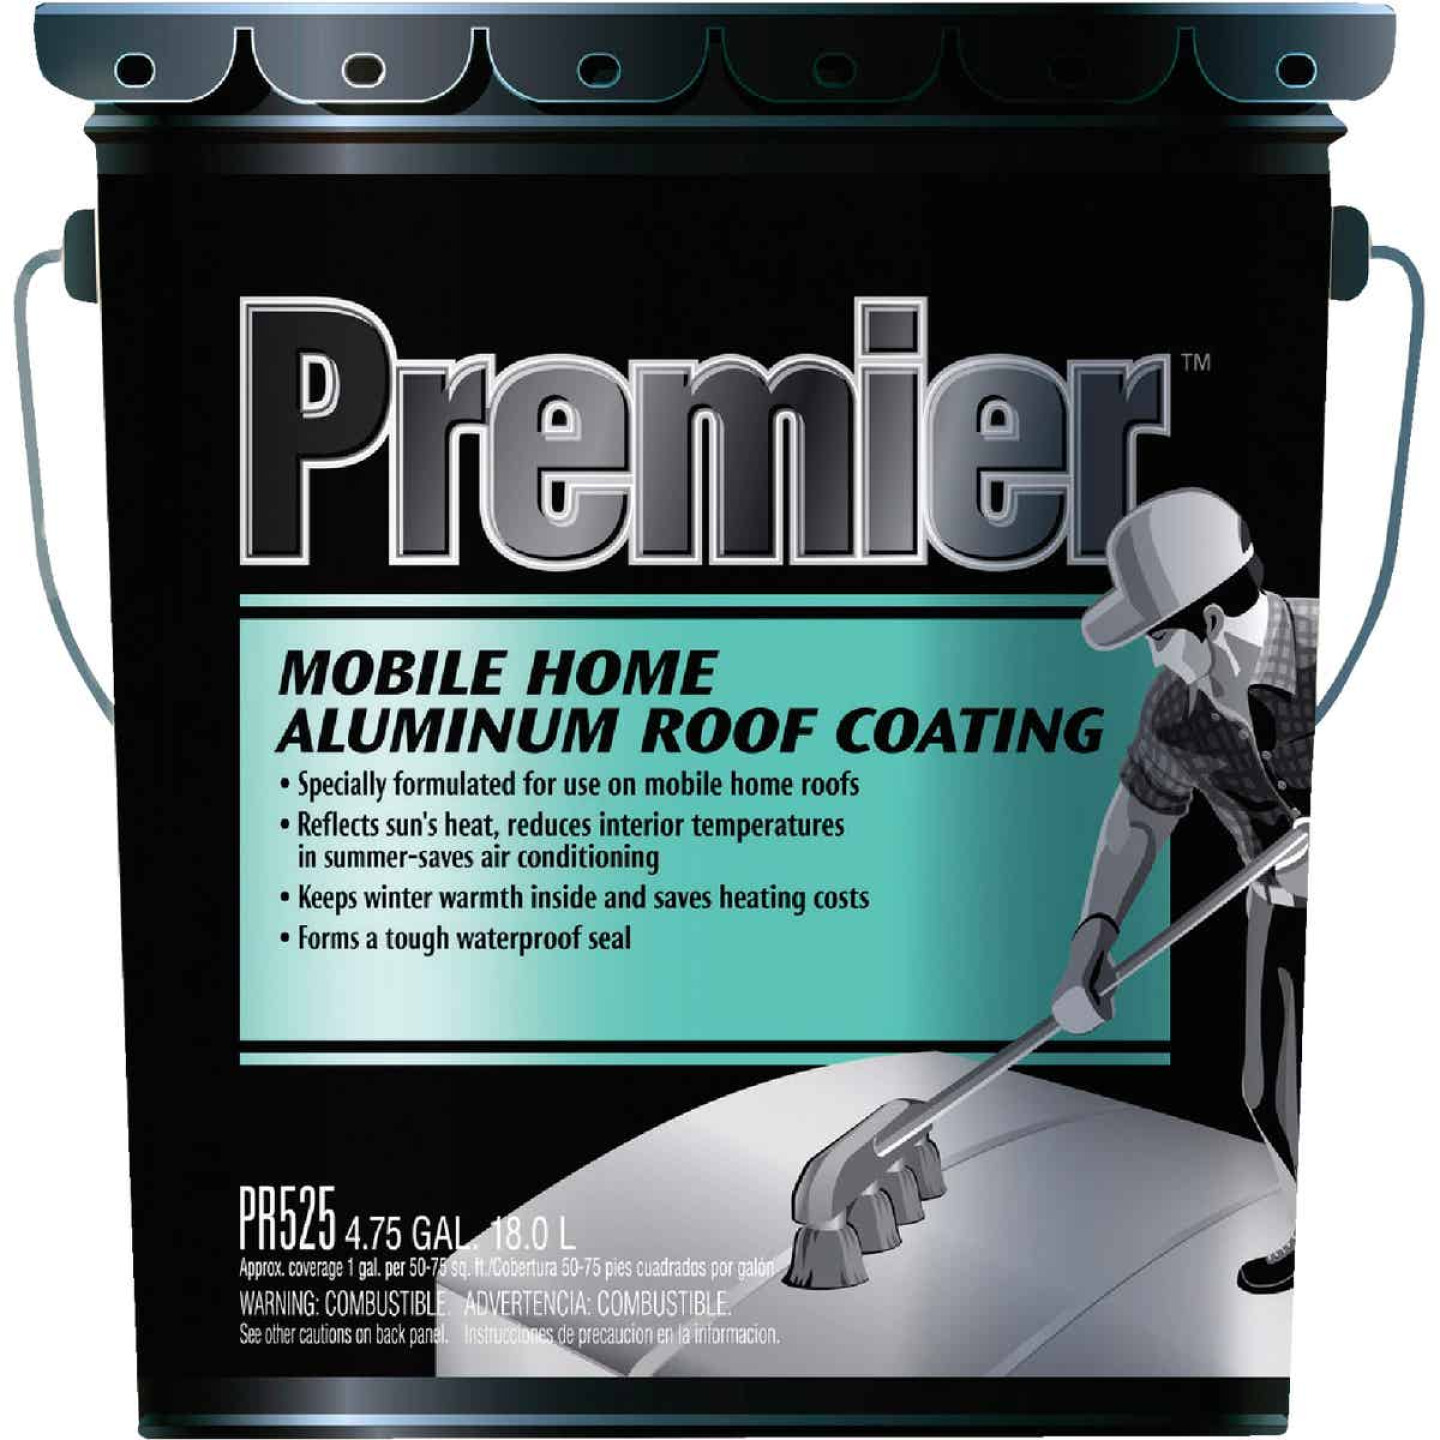 Premier 5 Gal. Mobile Home Aluminum Roof Coating Image 1